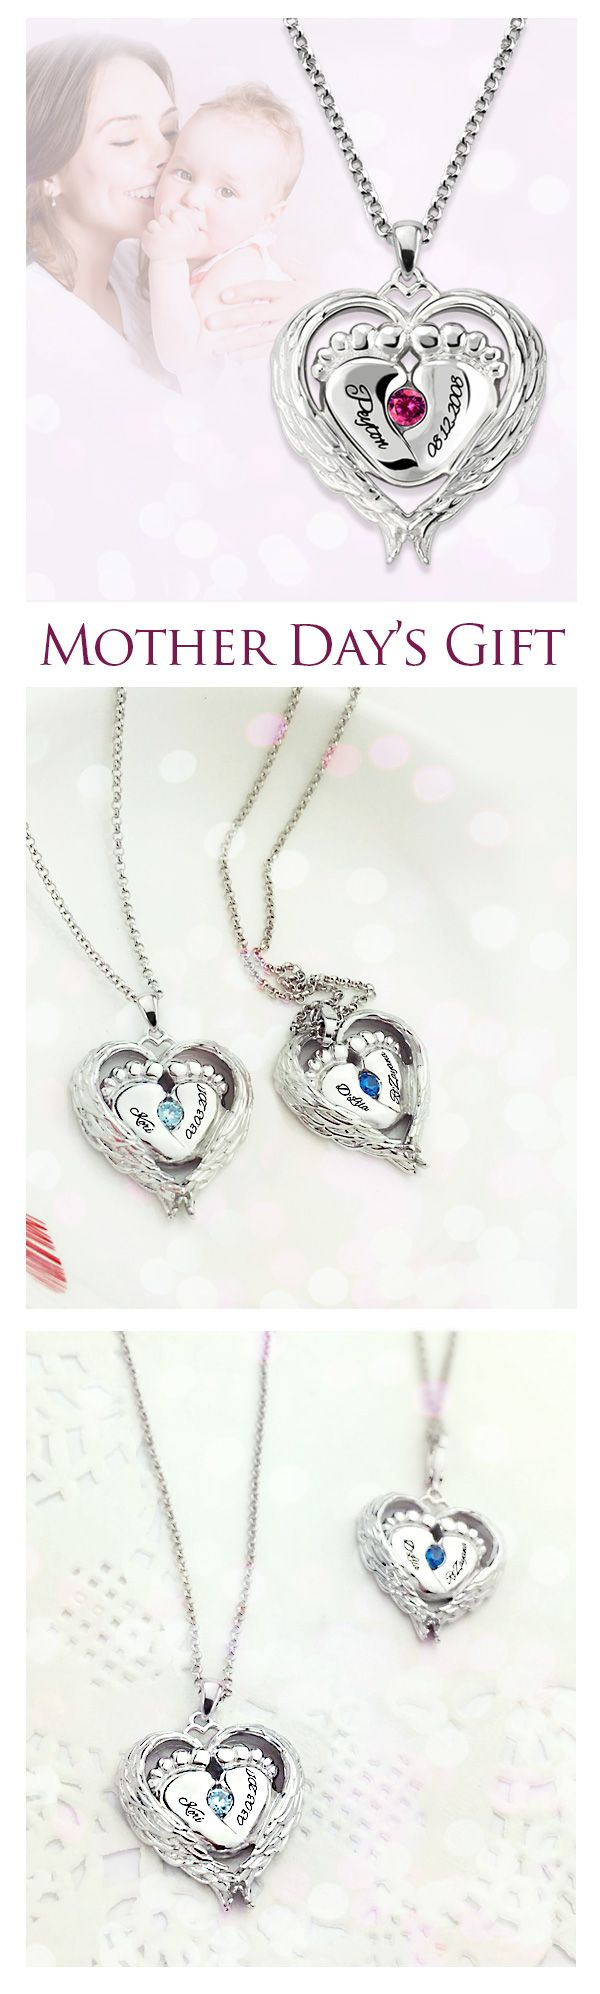 Angel Wings Baby Feet Necklace With Birthstone is  special gift for the woman who's been there for you since the start.Create your own necklace for mom from getnamenecklace